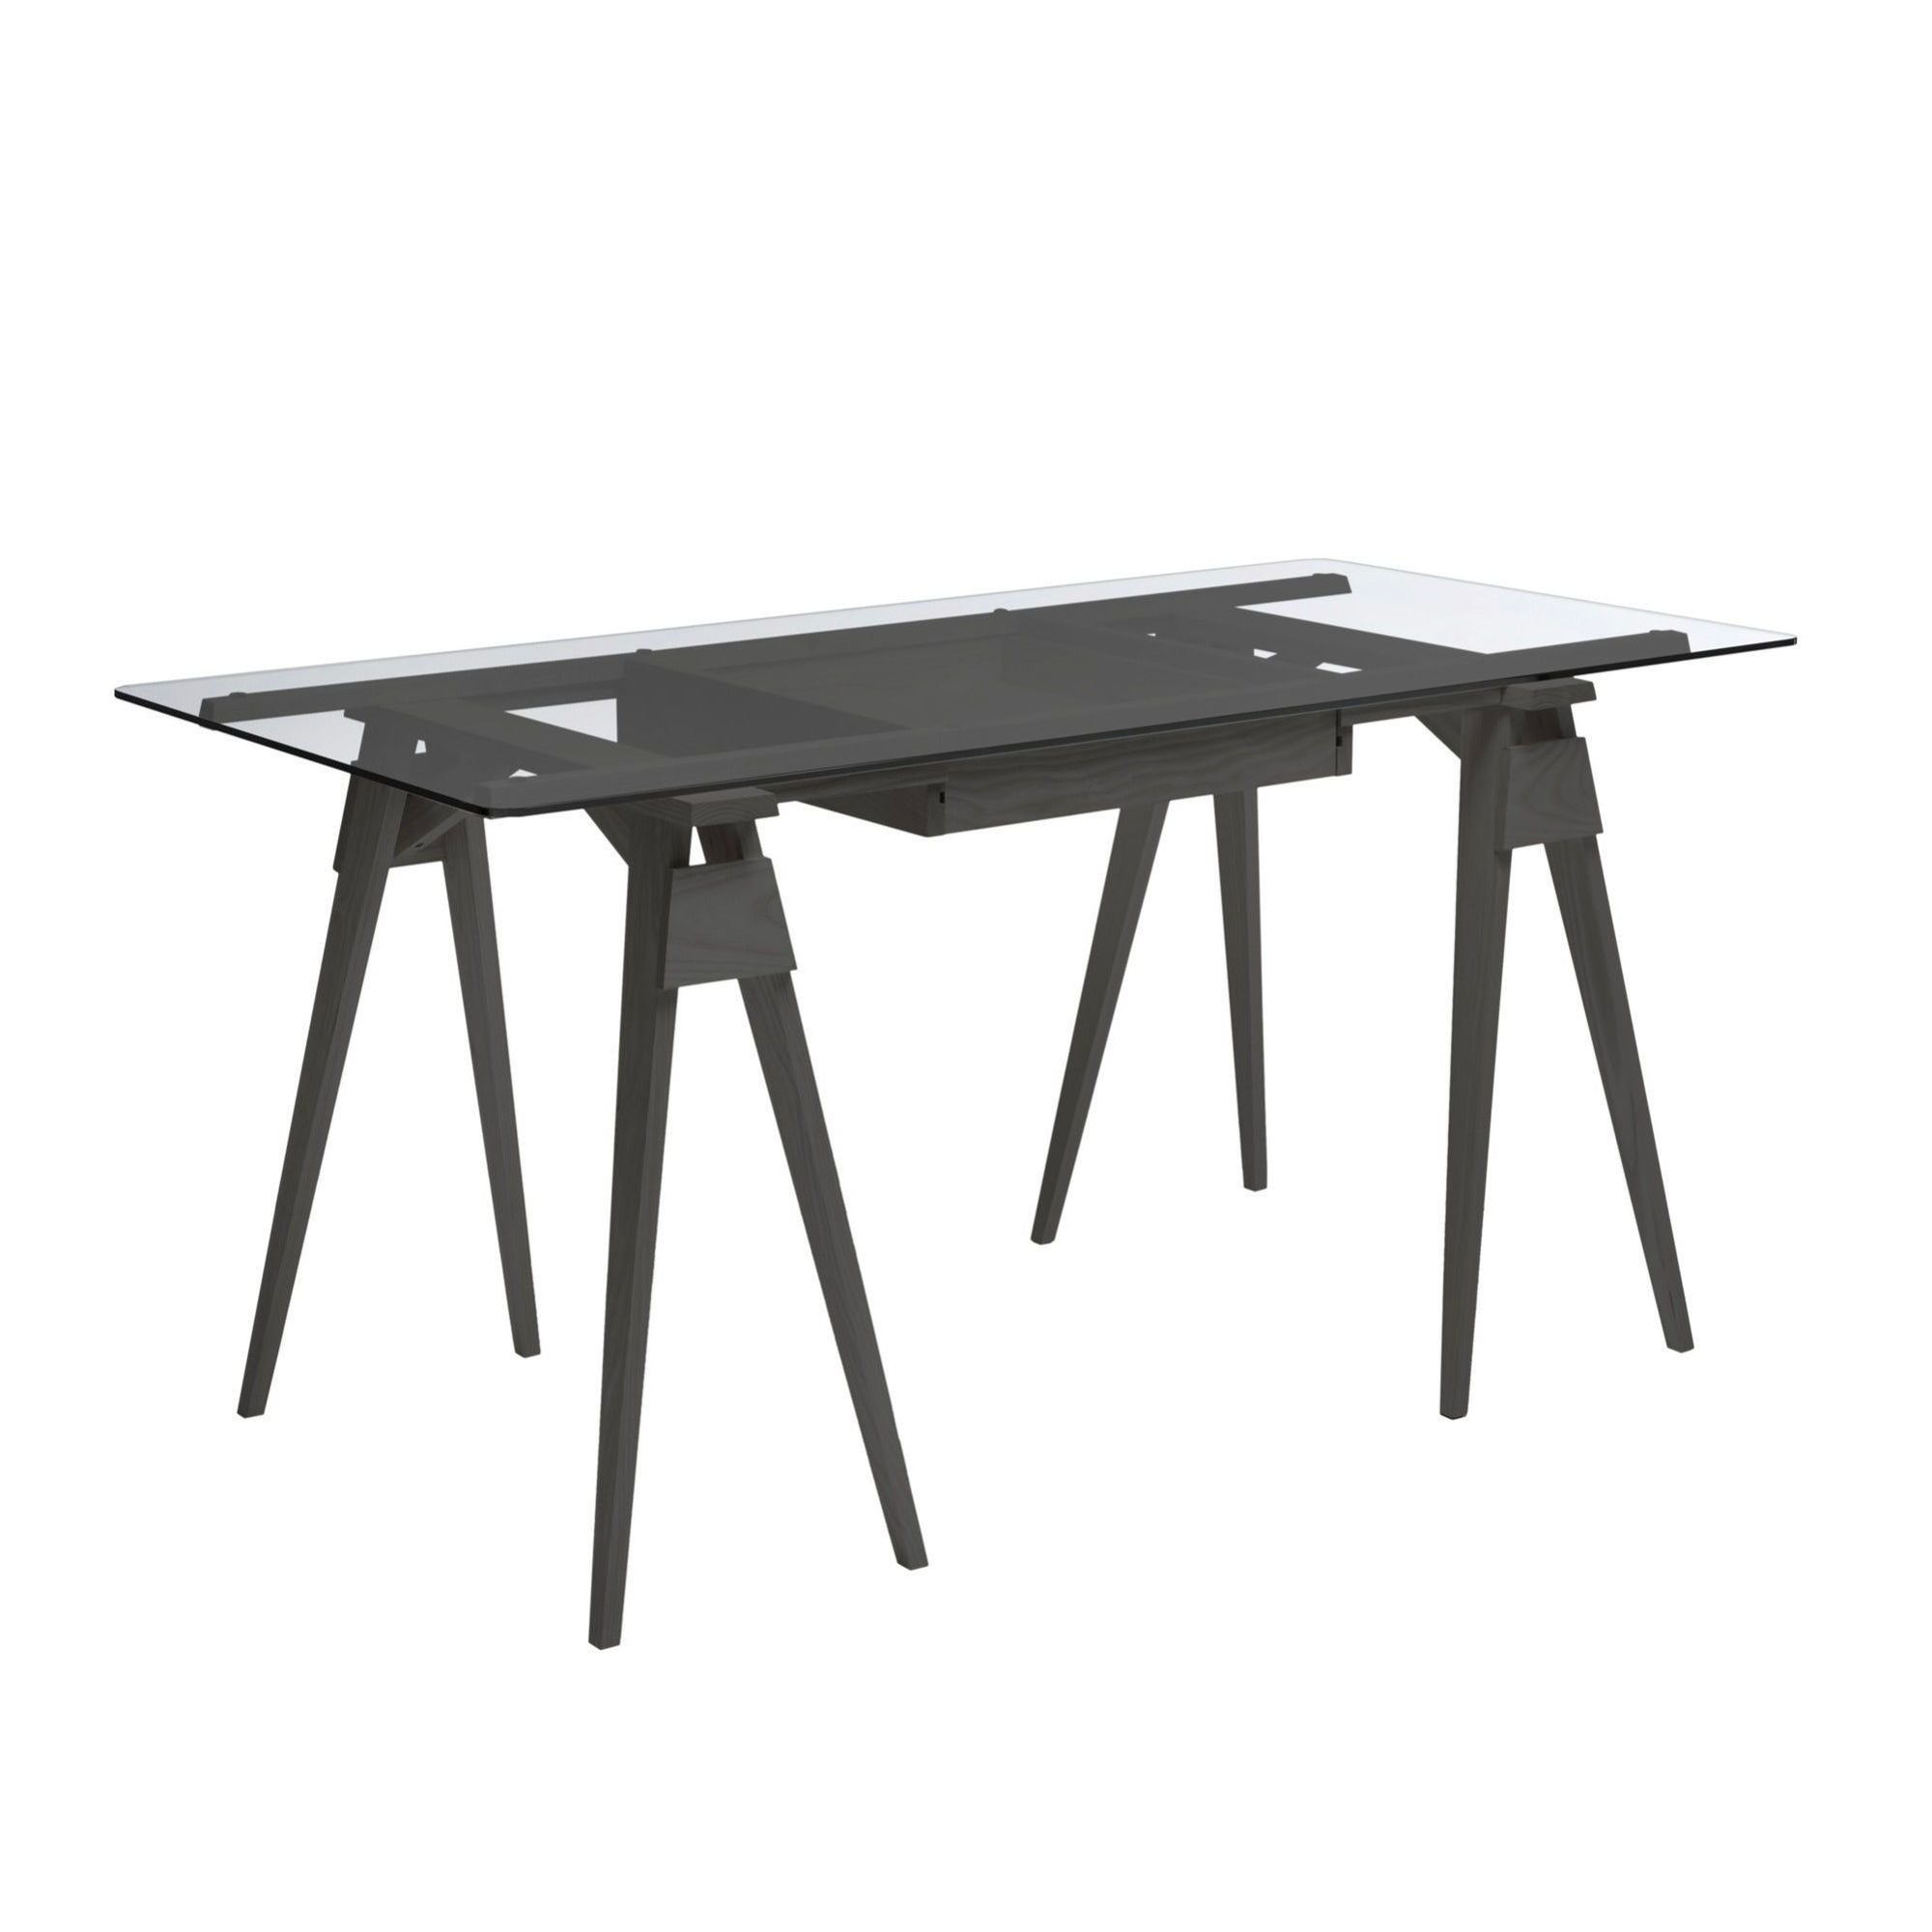 Design House Stockholm Arco desk, black